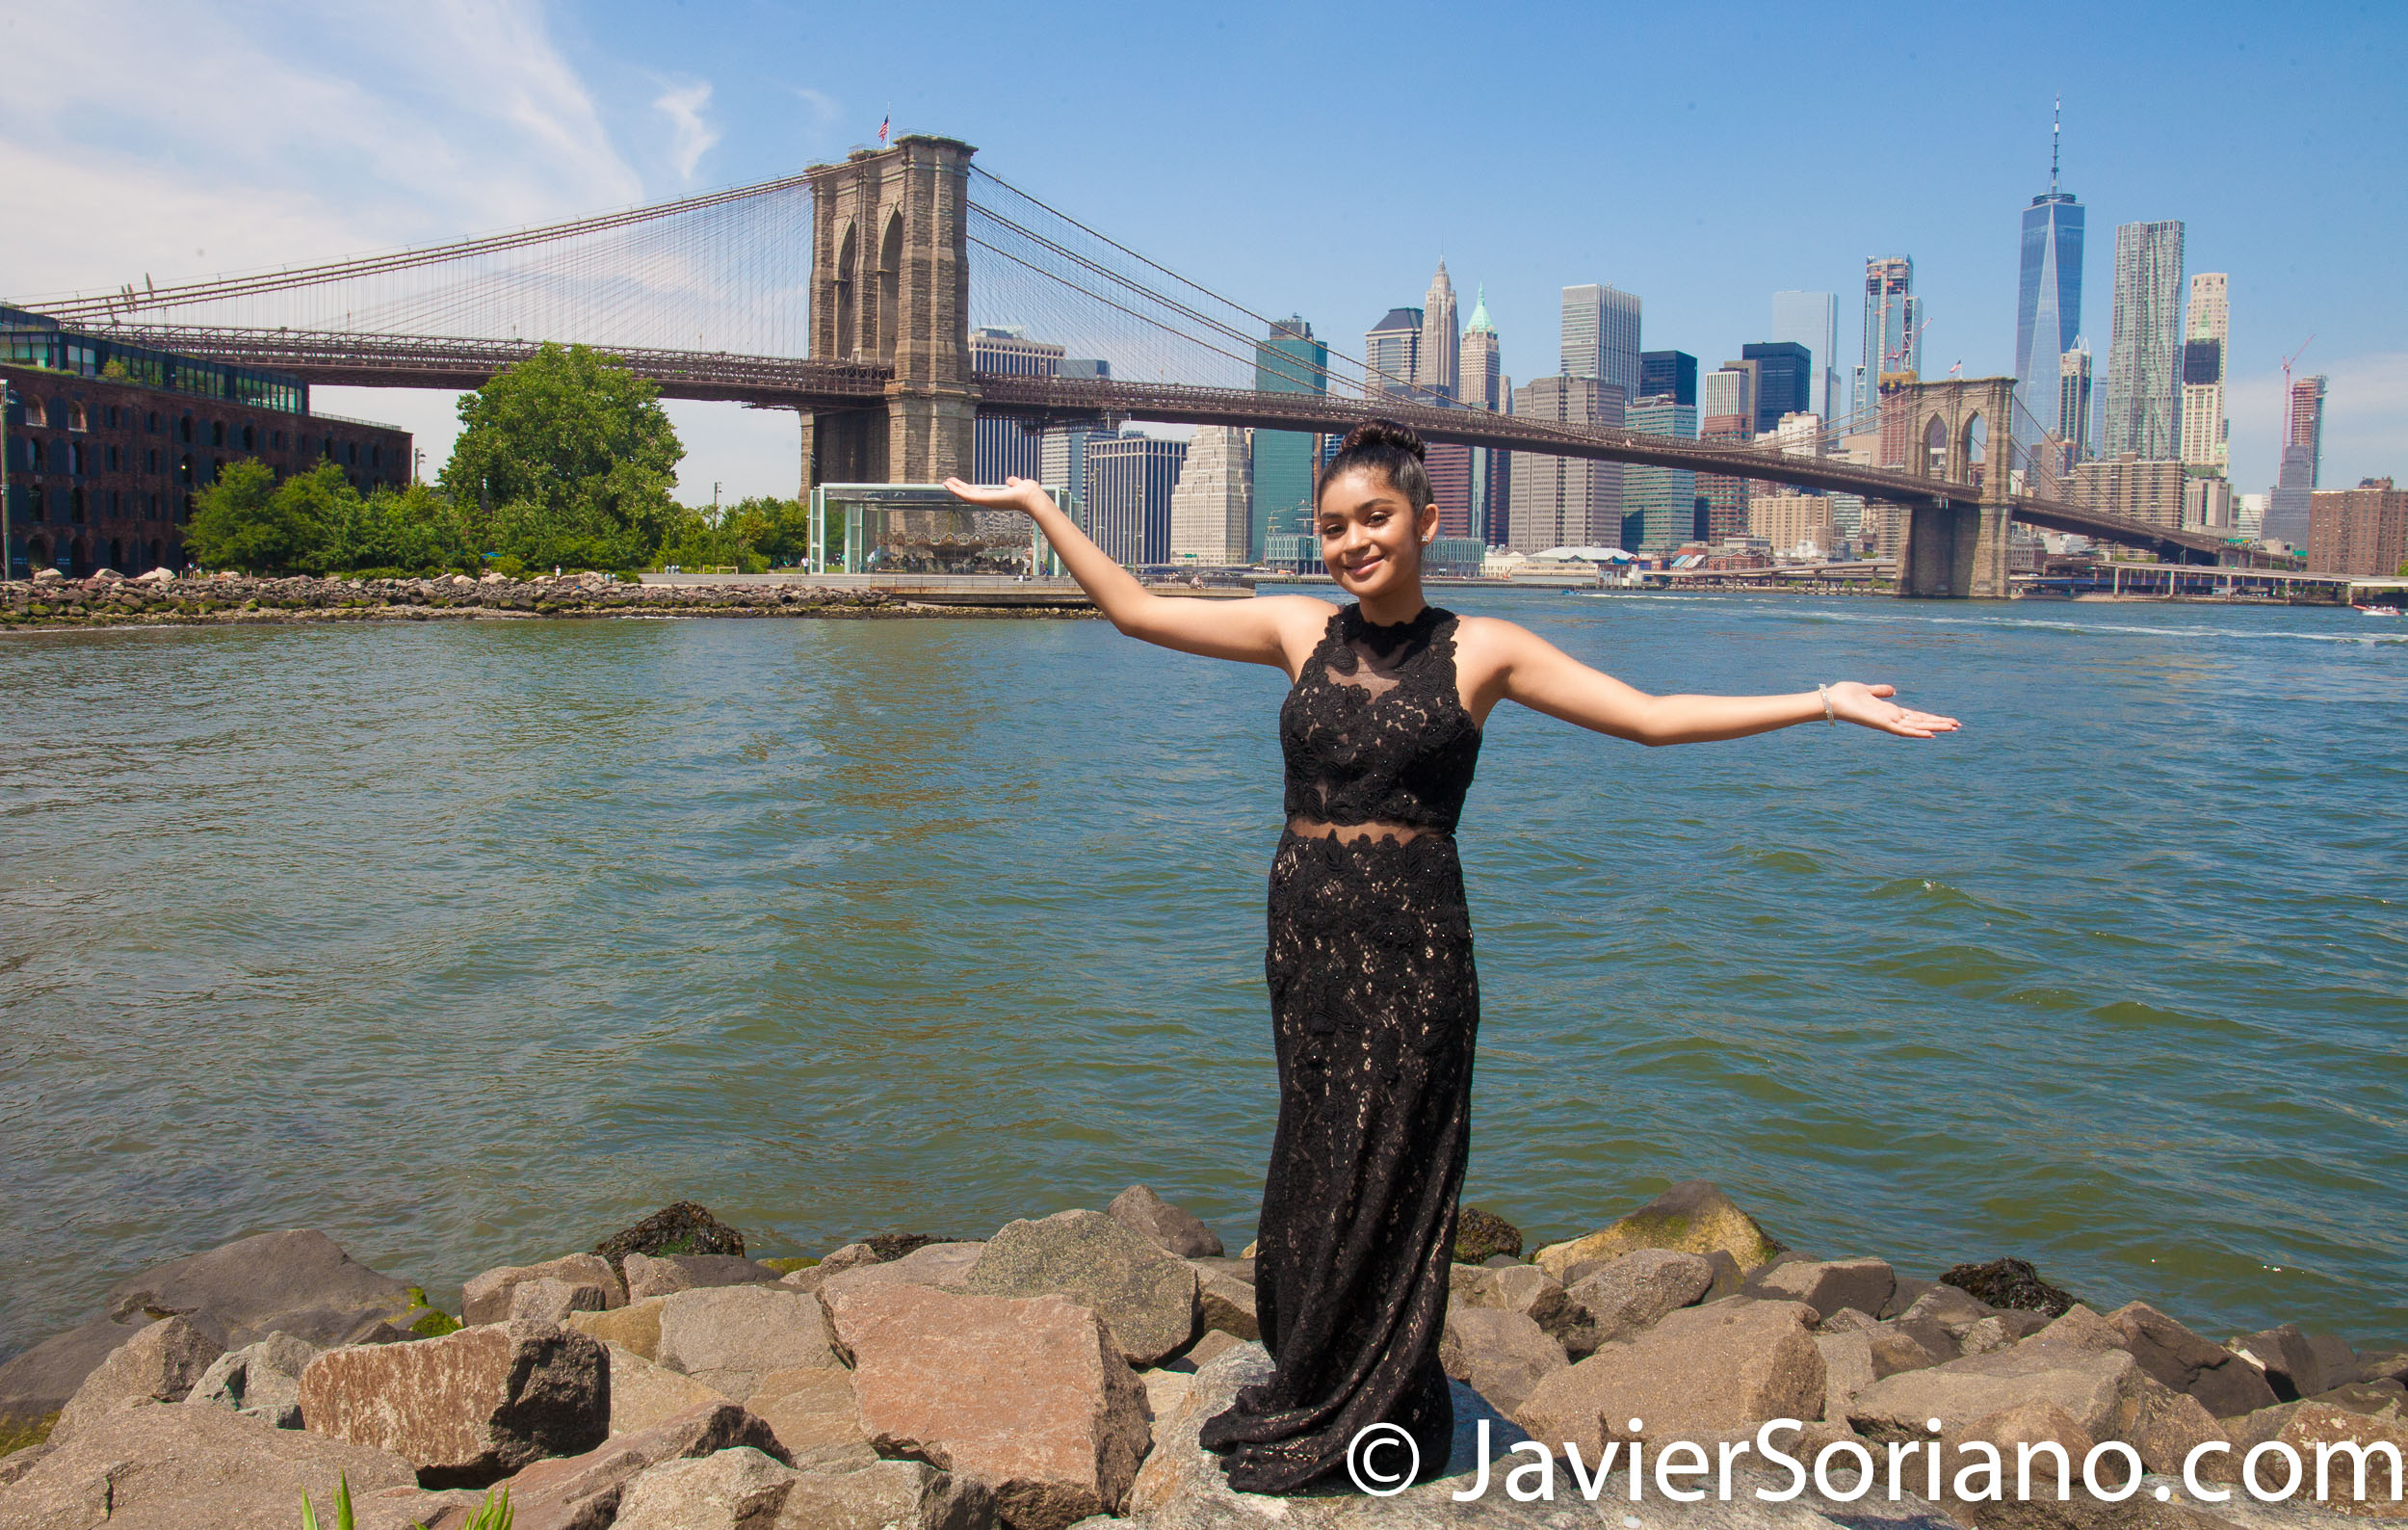 Brooklyn Bridge Park, NYC – The Brooklyn Bridge and skyscraper in the Lower Manhattan. Do you need Sweet Sixteen photos? Send me a message. El Puente de Brooklyn y rascacielos en el bajo Manhattan. ¿Necesitas fotos de Quinceañera? Envíeme un mensaje. Photo by Javier Soriano/www.JavierSoriano.com